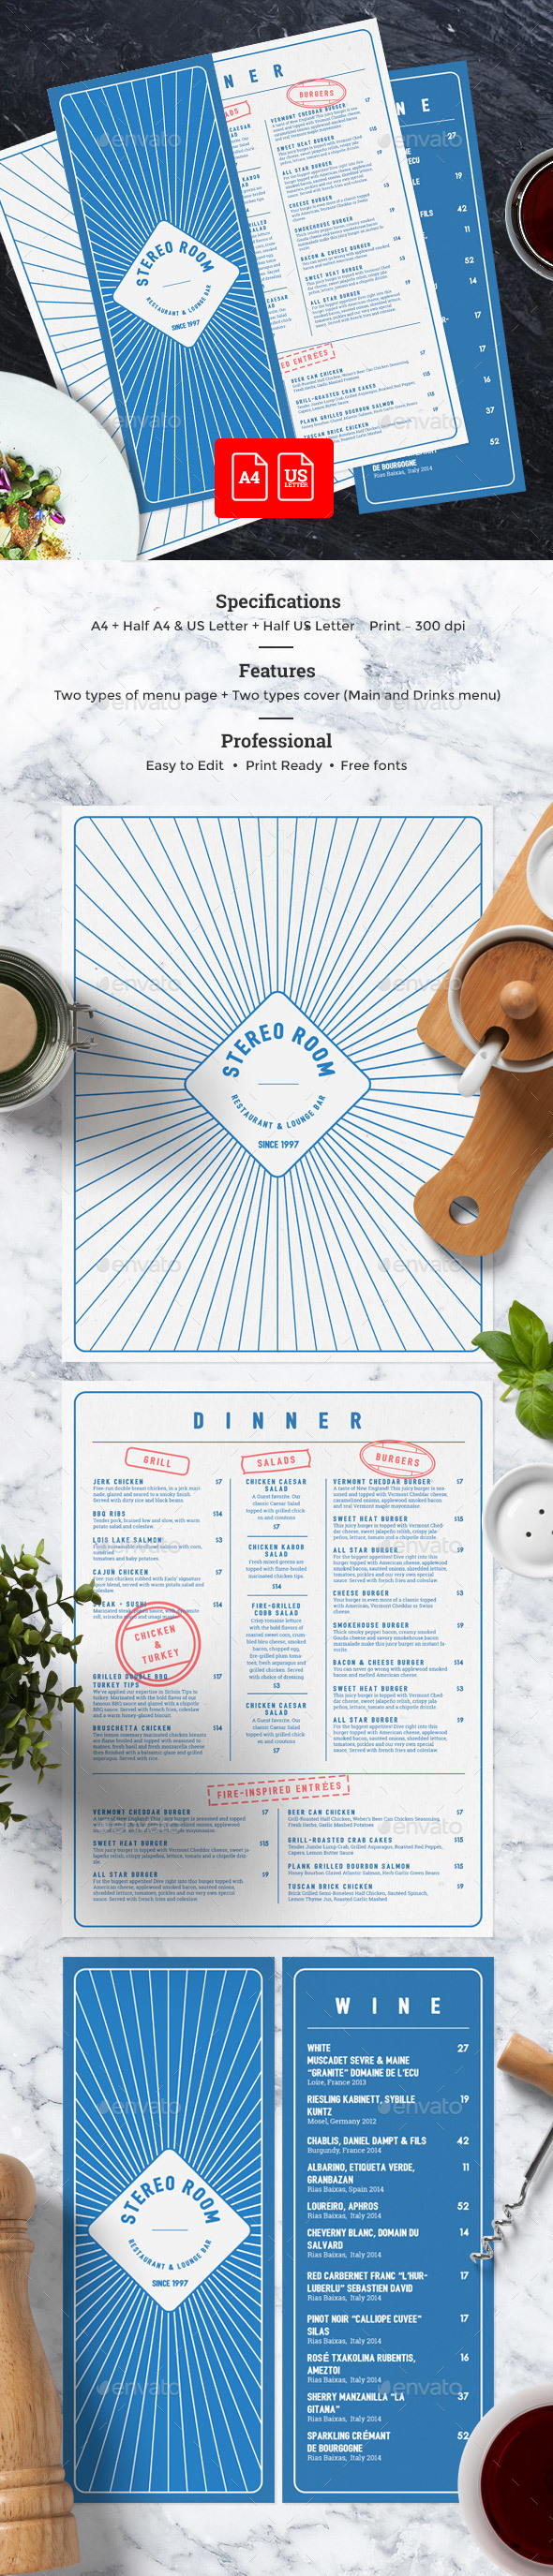 Elegant Cafe Menu - Food Menus Print Templates